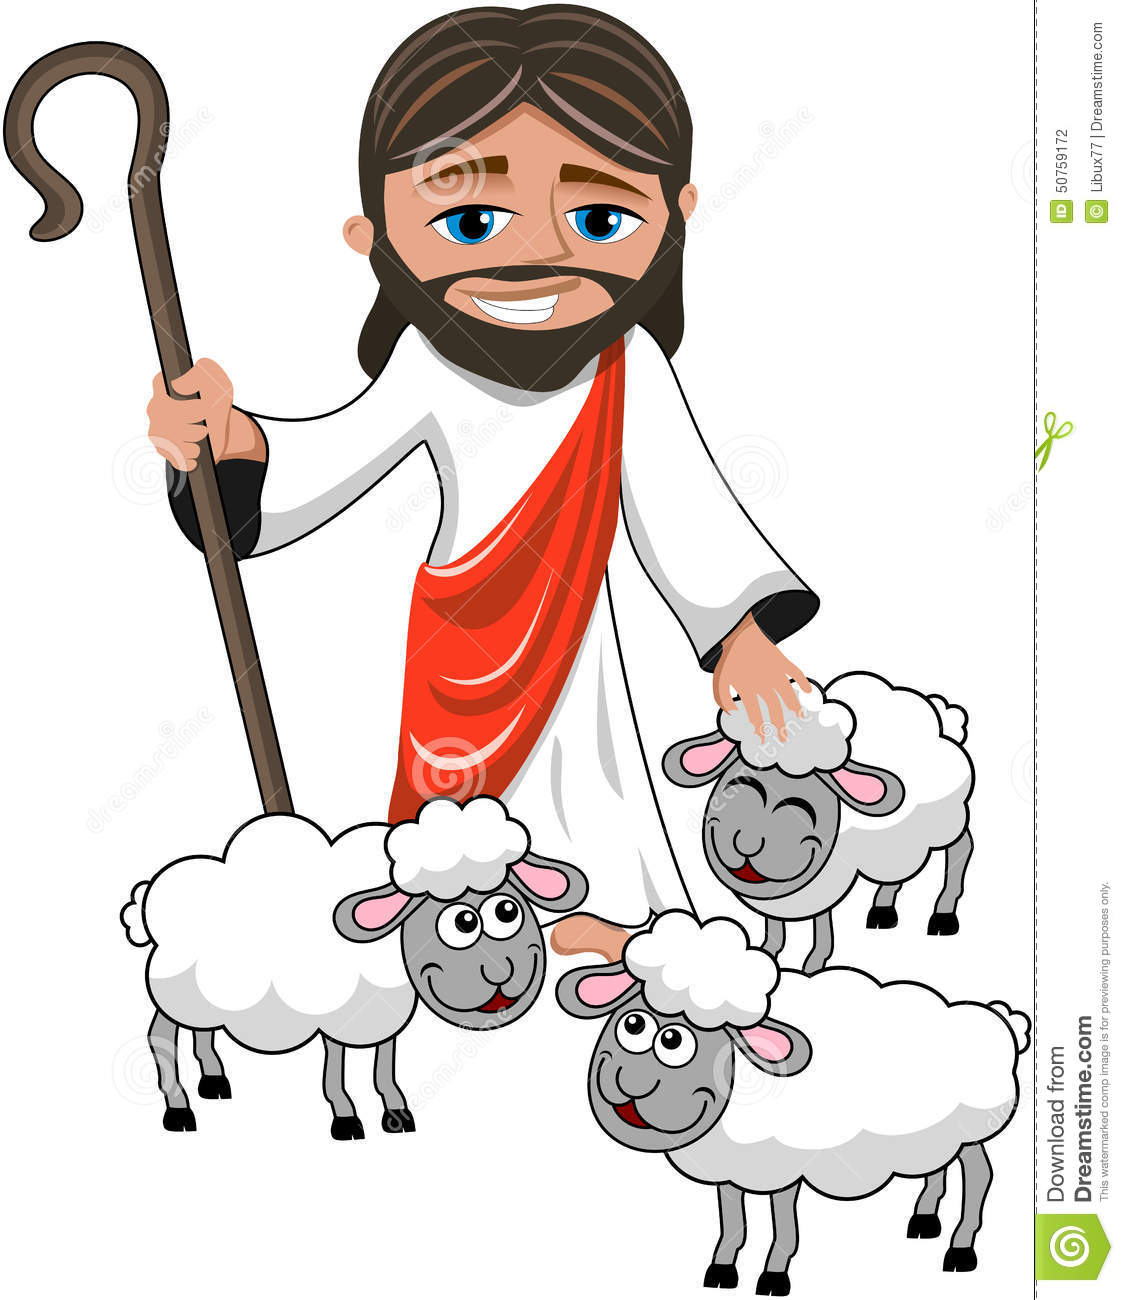 clipart cartoon jesus - photo #47